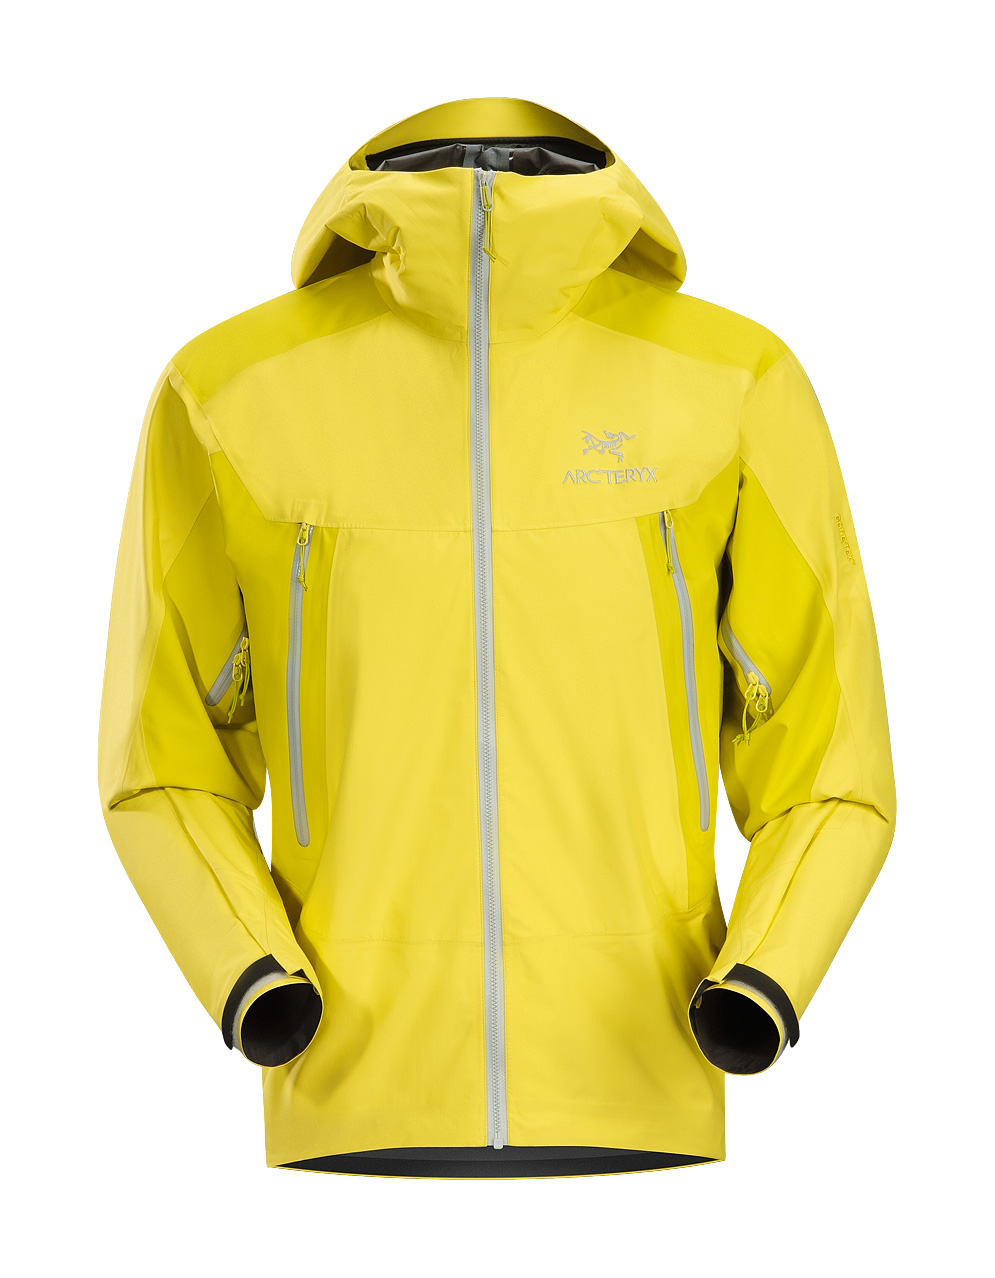 Arcteryx Citron Alpha SL Hybrid Jacket - New